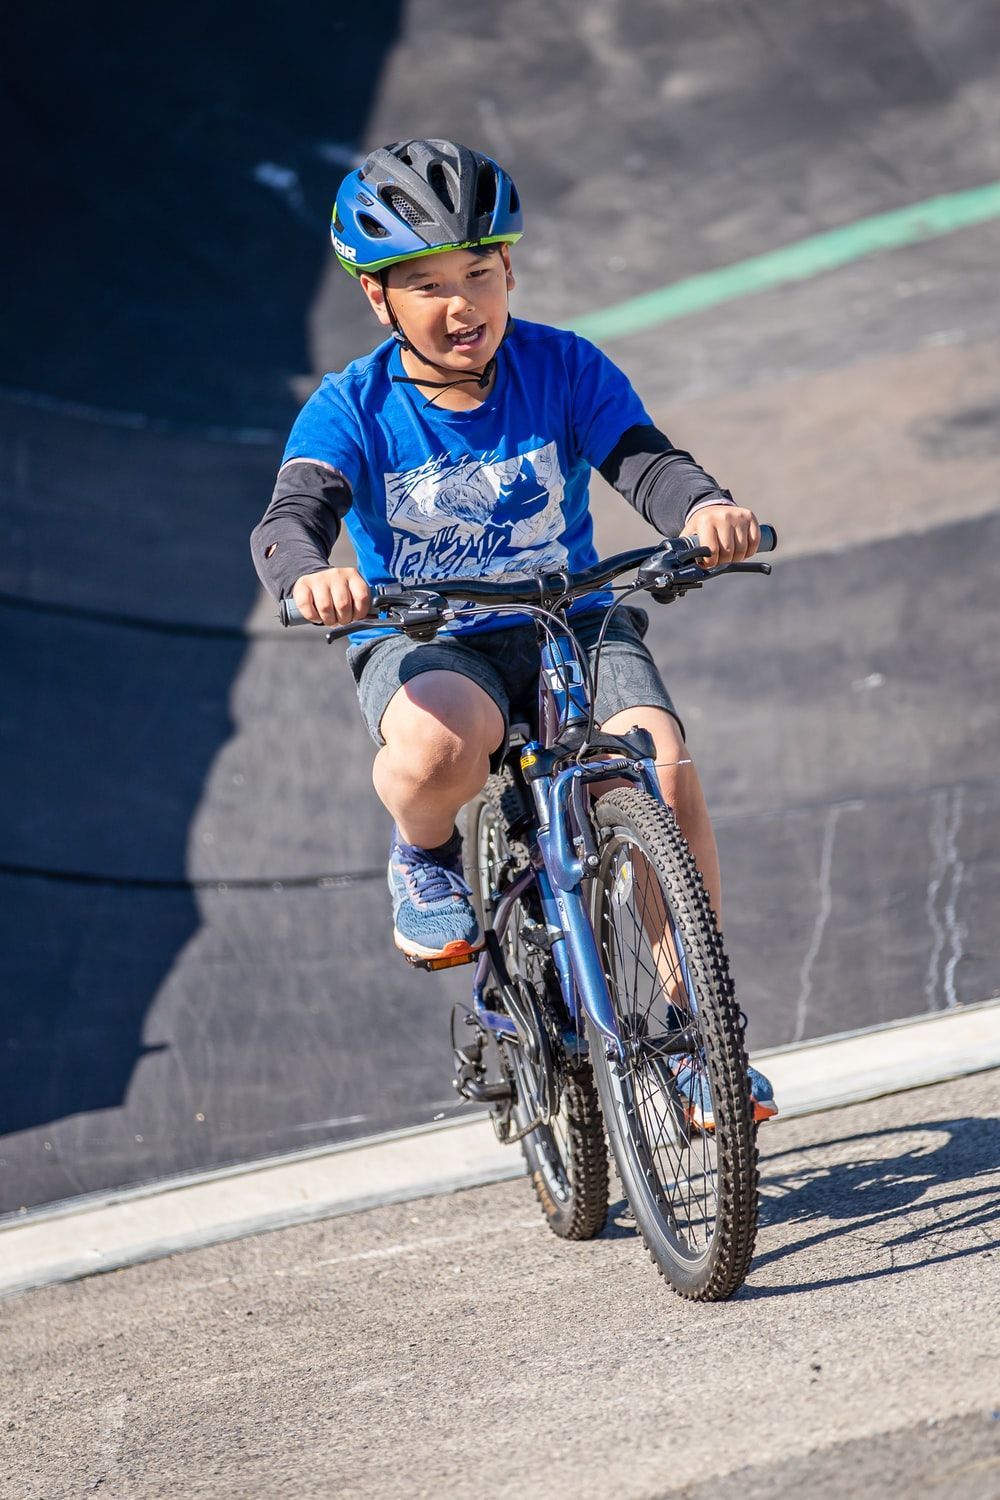 boy in blue long sleeve shirt riding on bicycle